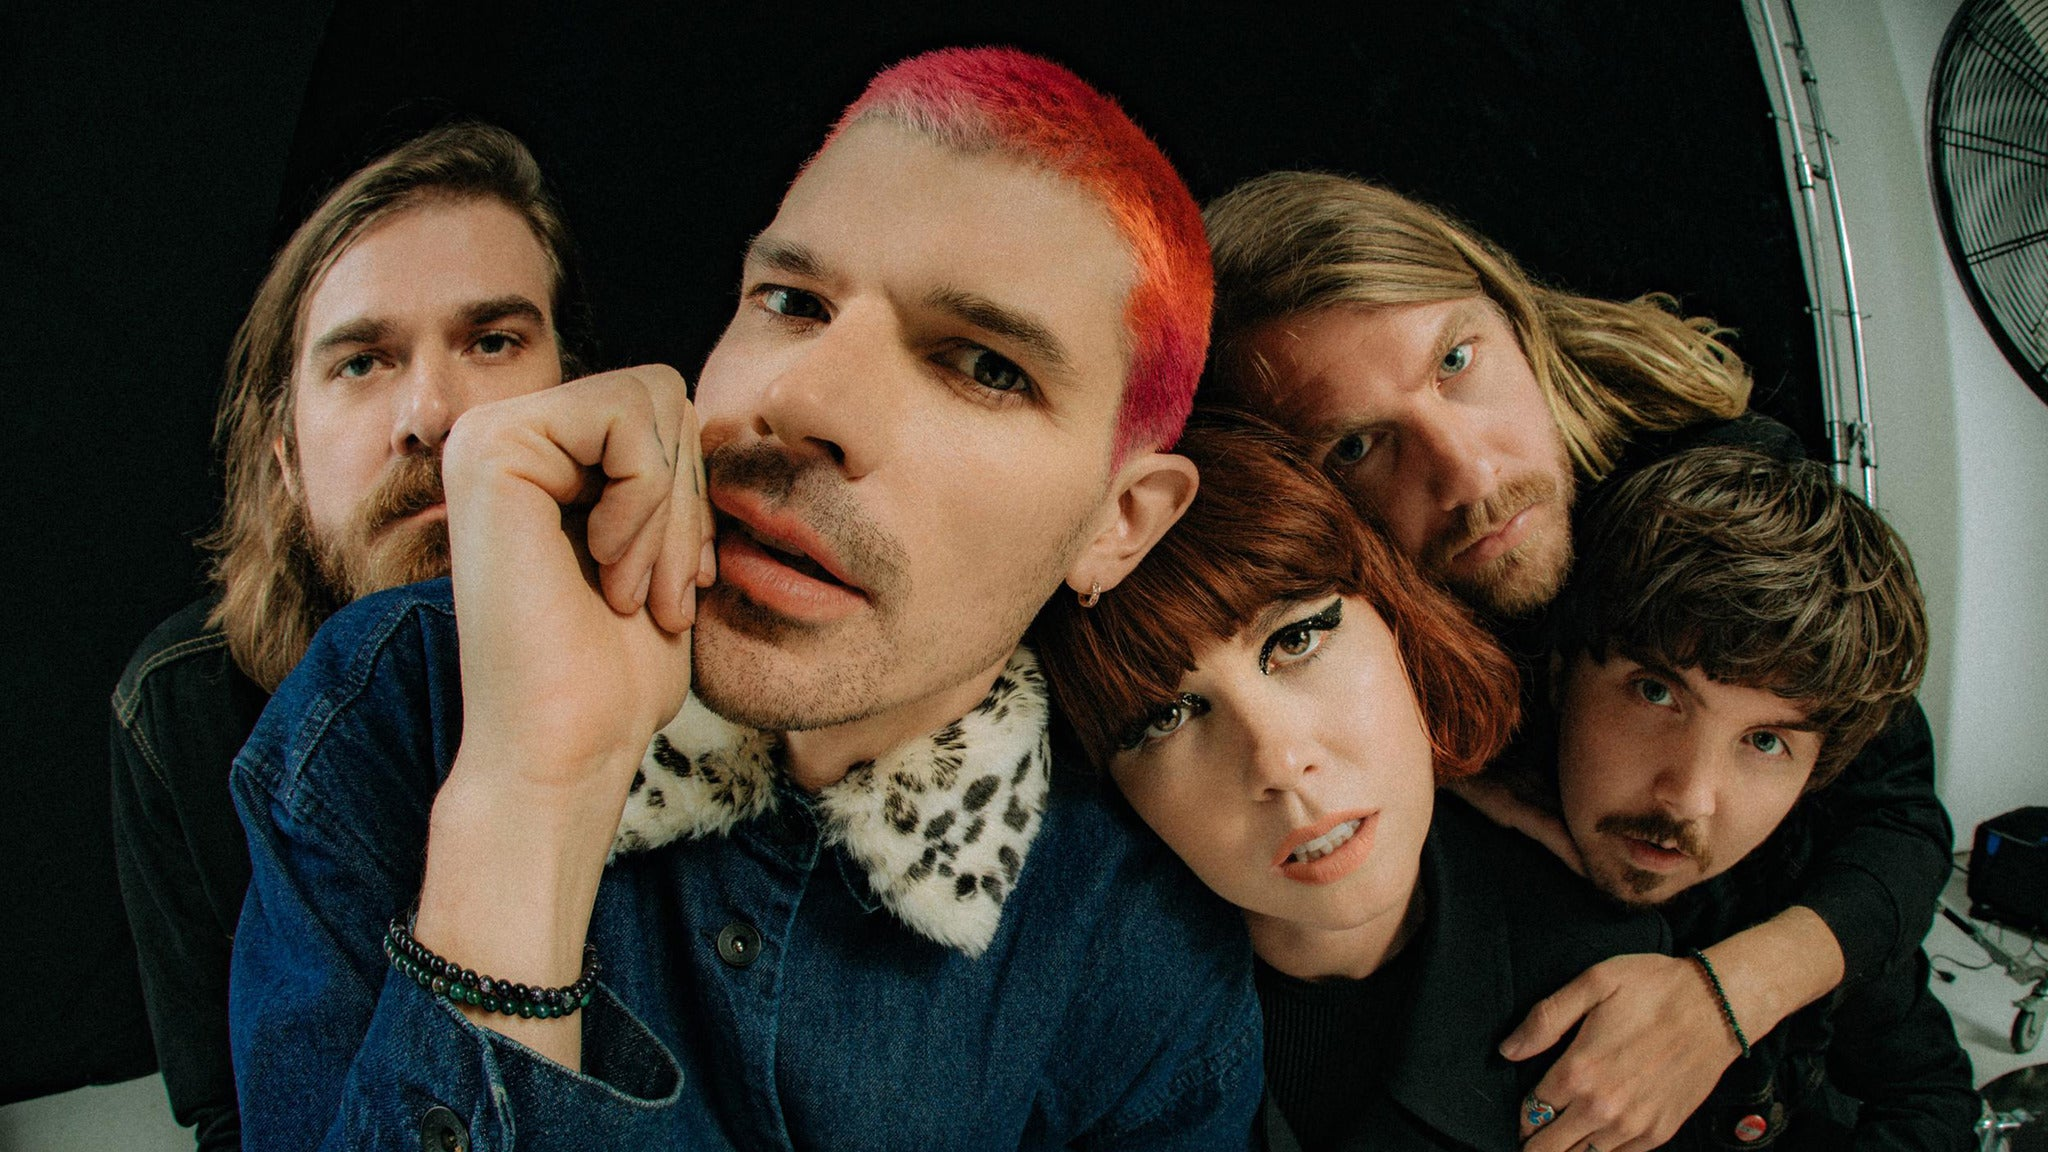 Grouplove - Never Trust A Happy Song 10th Anniversary pre-sale password